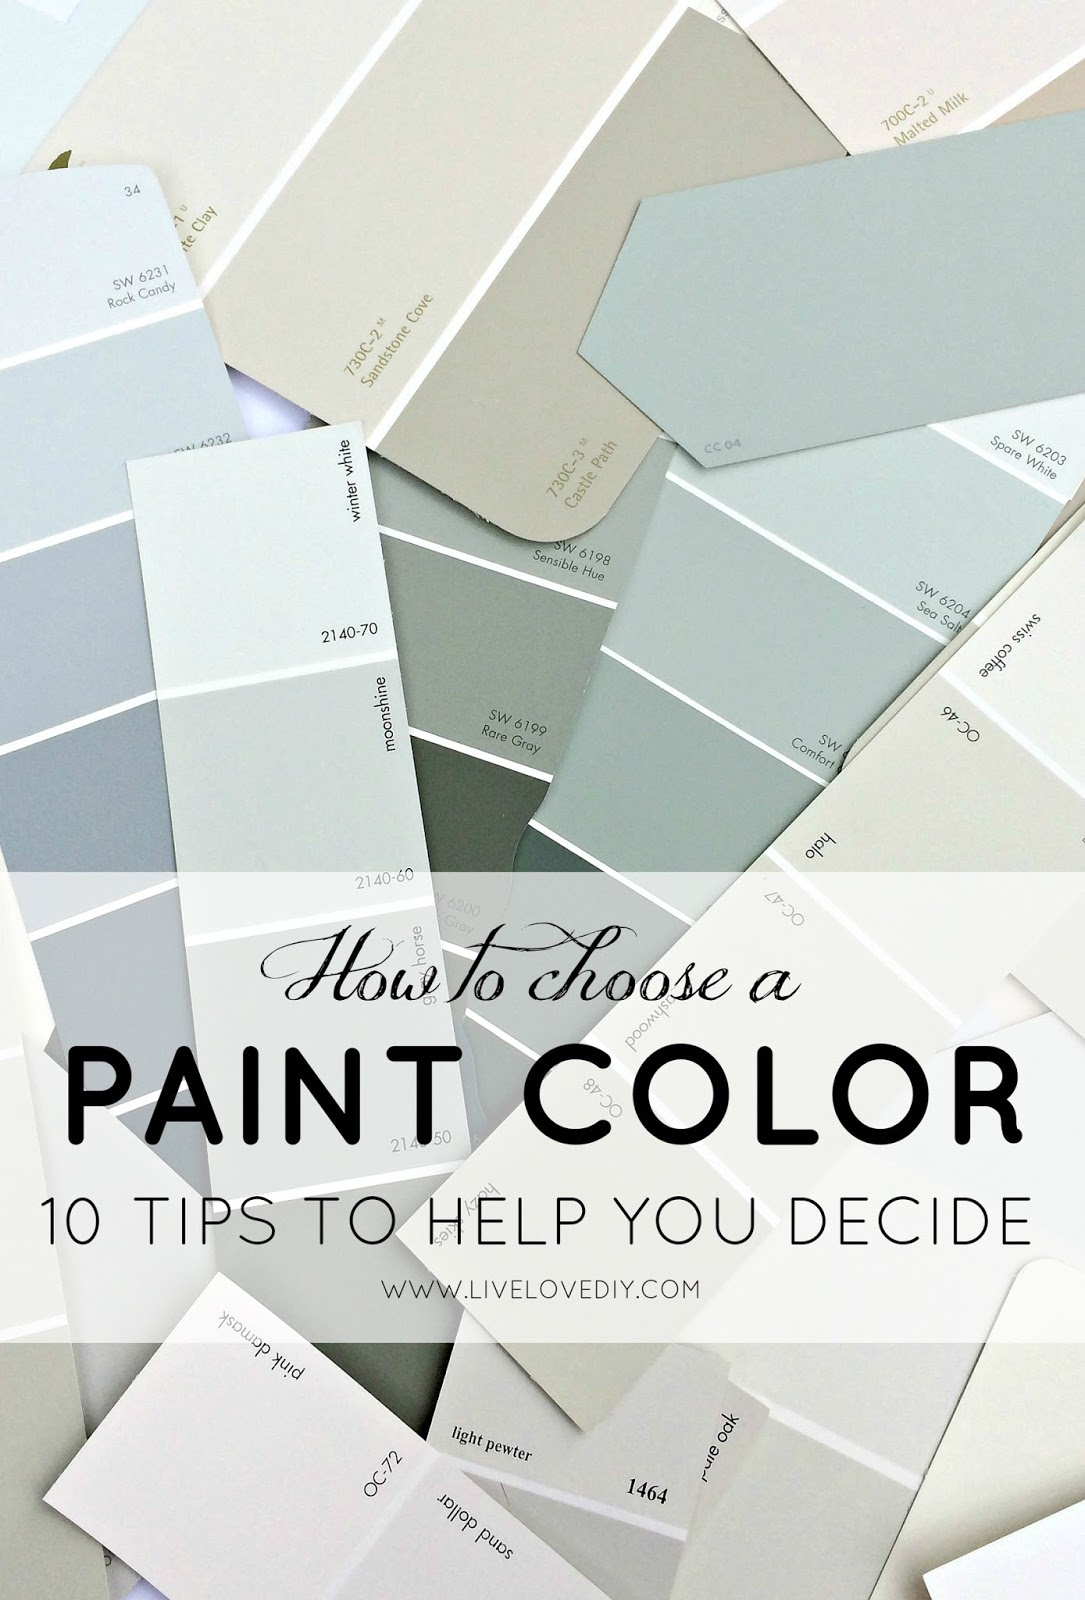 How To Choose A Paint Color 10 Tips Help You Decide